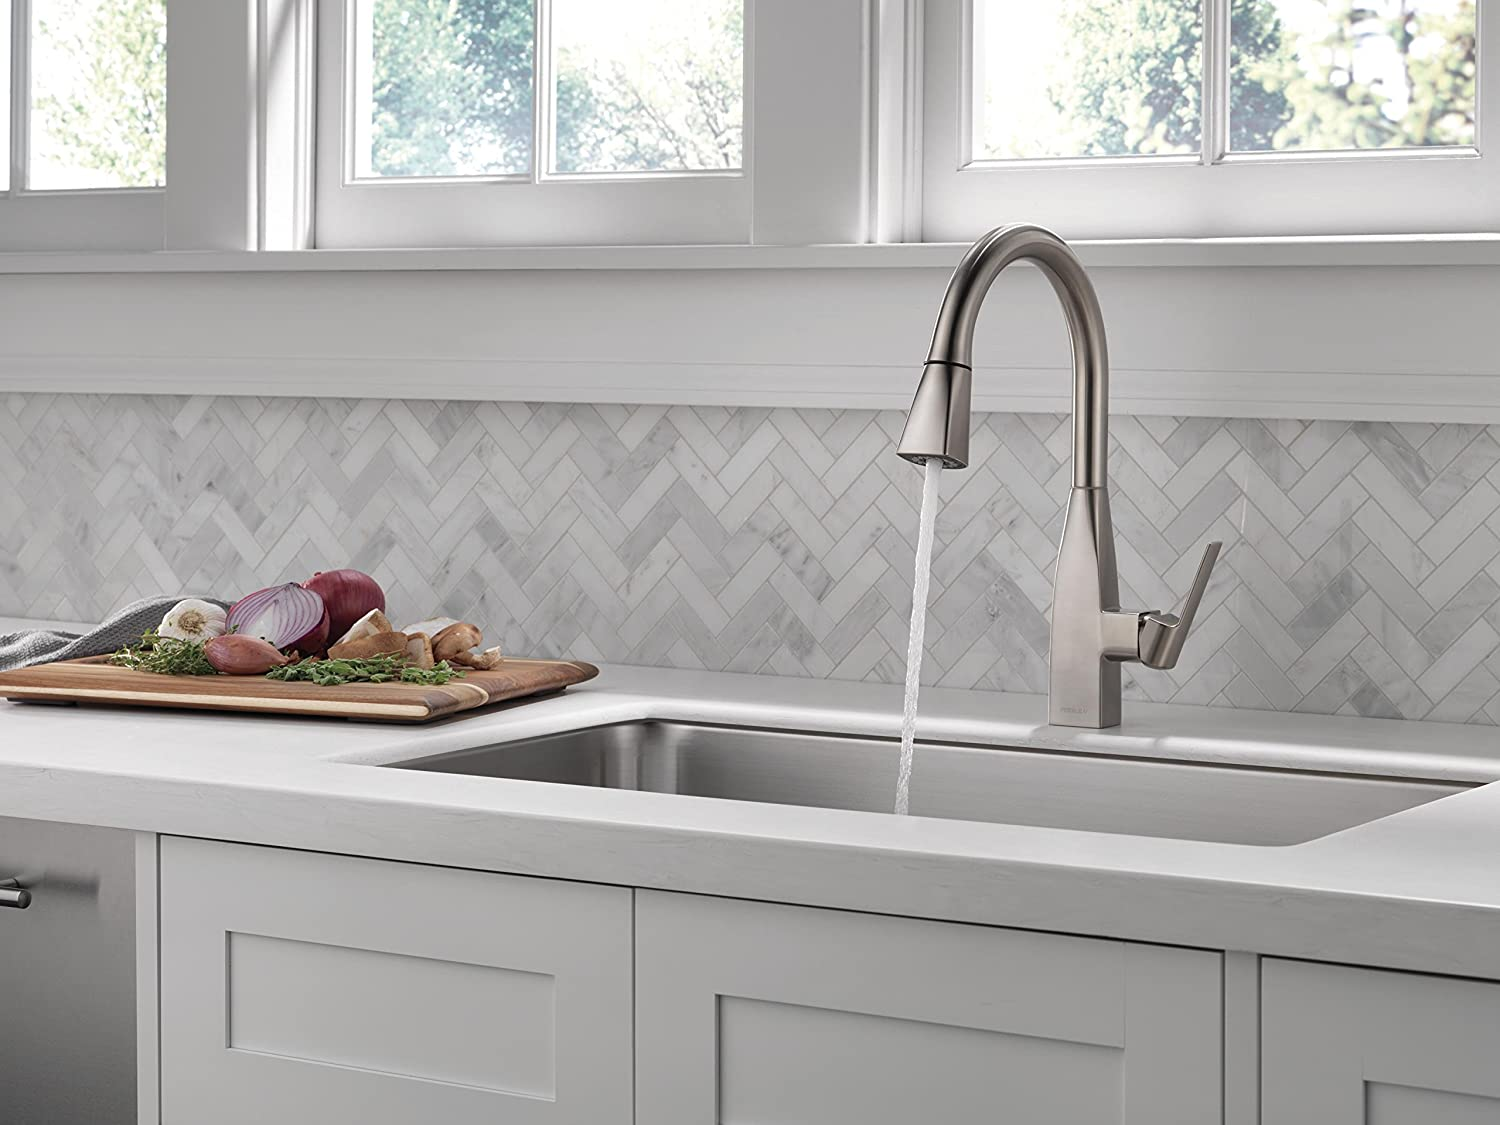 Peerless xander single handle kitchen sink faucet with pull down sprayer stainless p7919lf ss amazon com